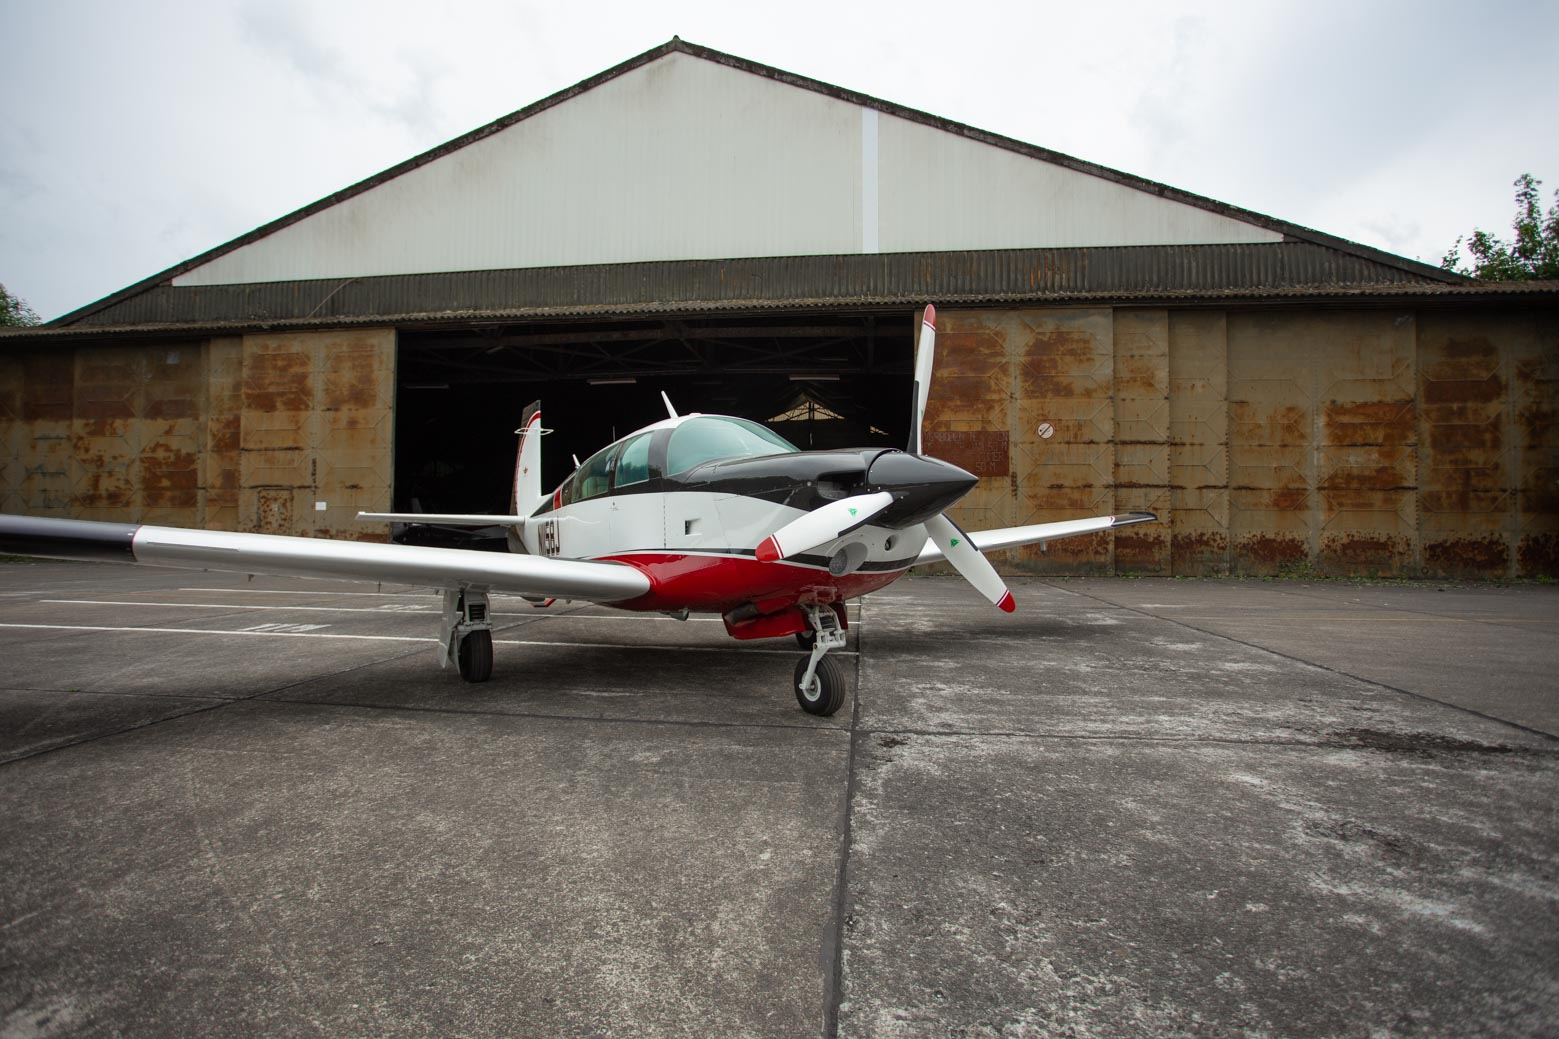 Gorgeous 1982 Mooney M20J 201 with radar and fresh paint